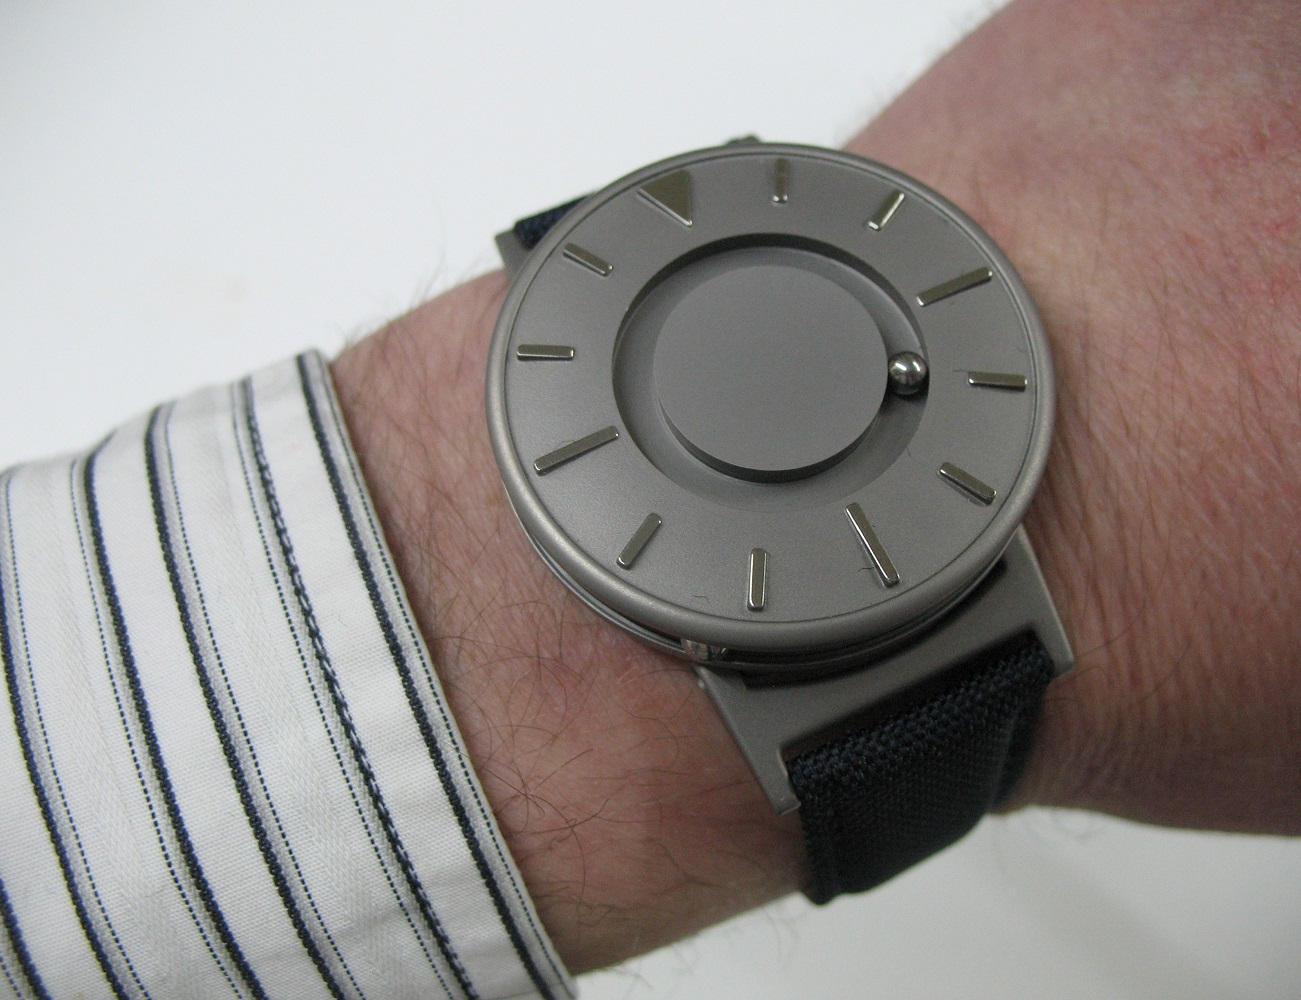 The Bradley Watch by Eone Time